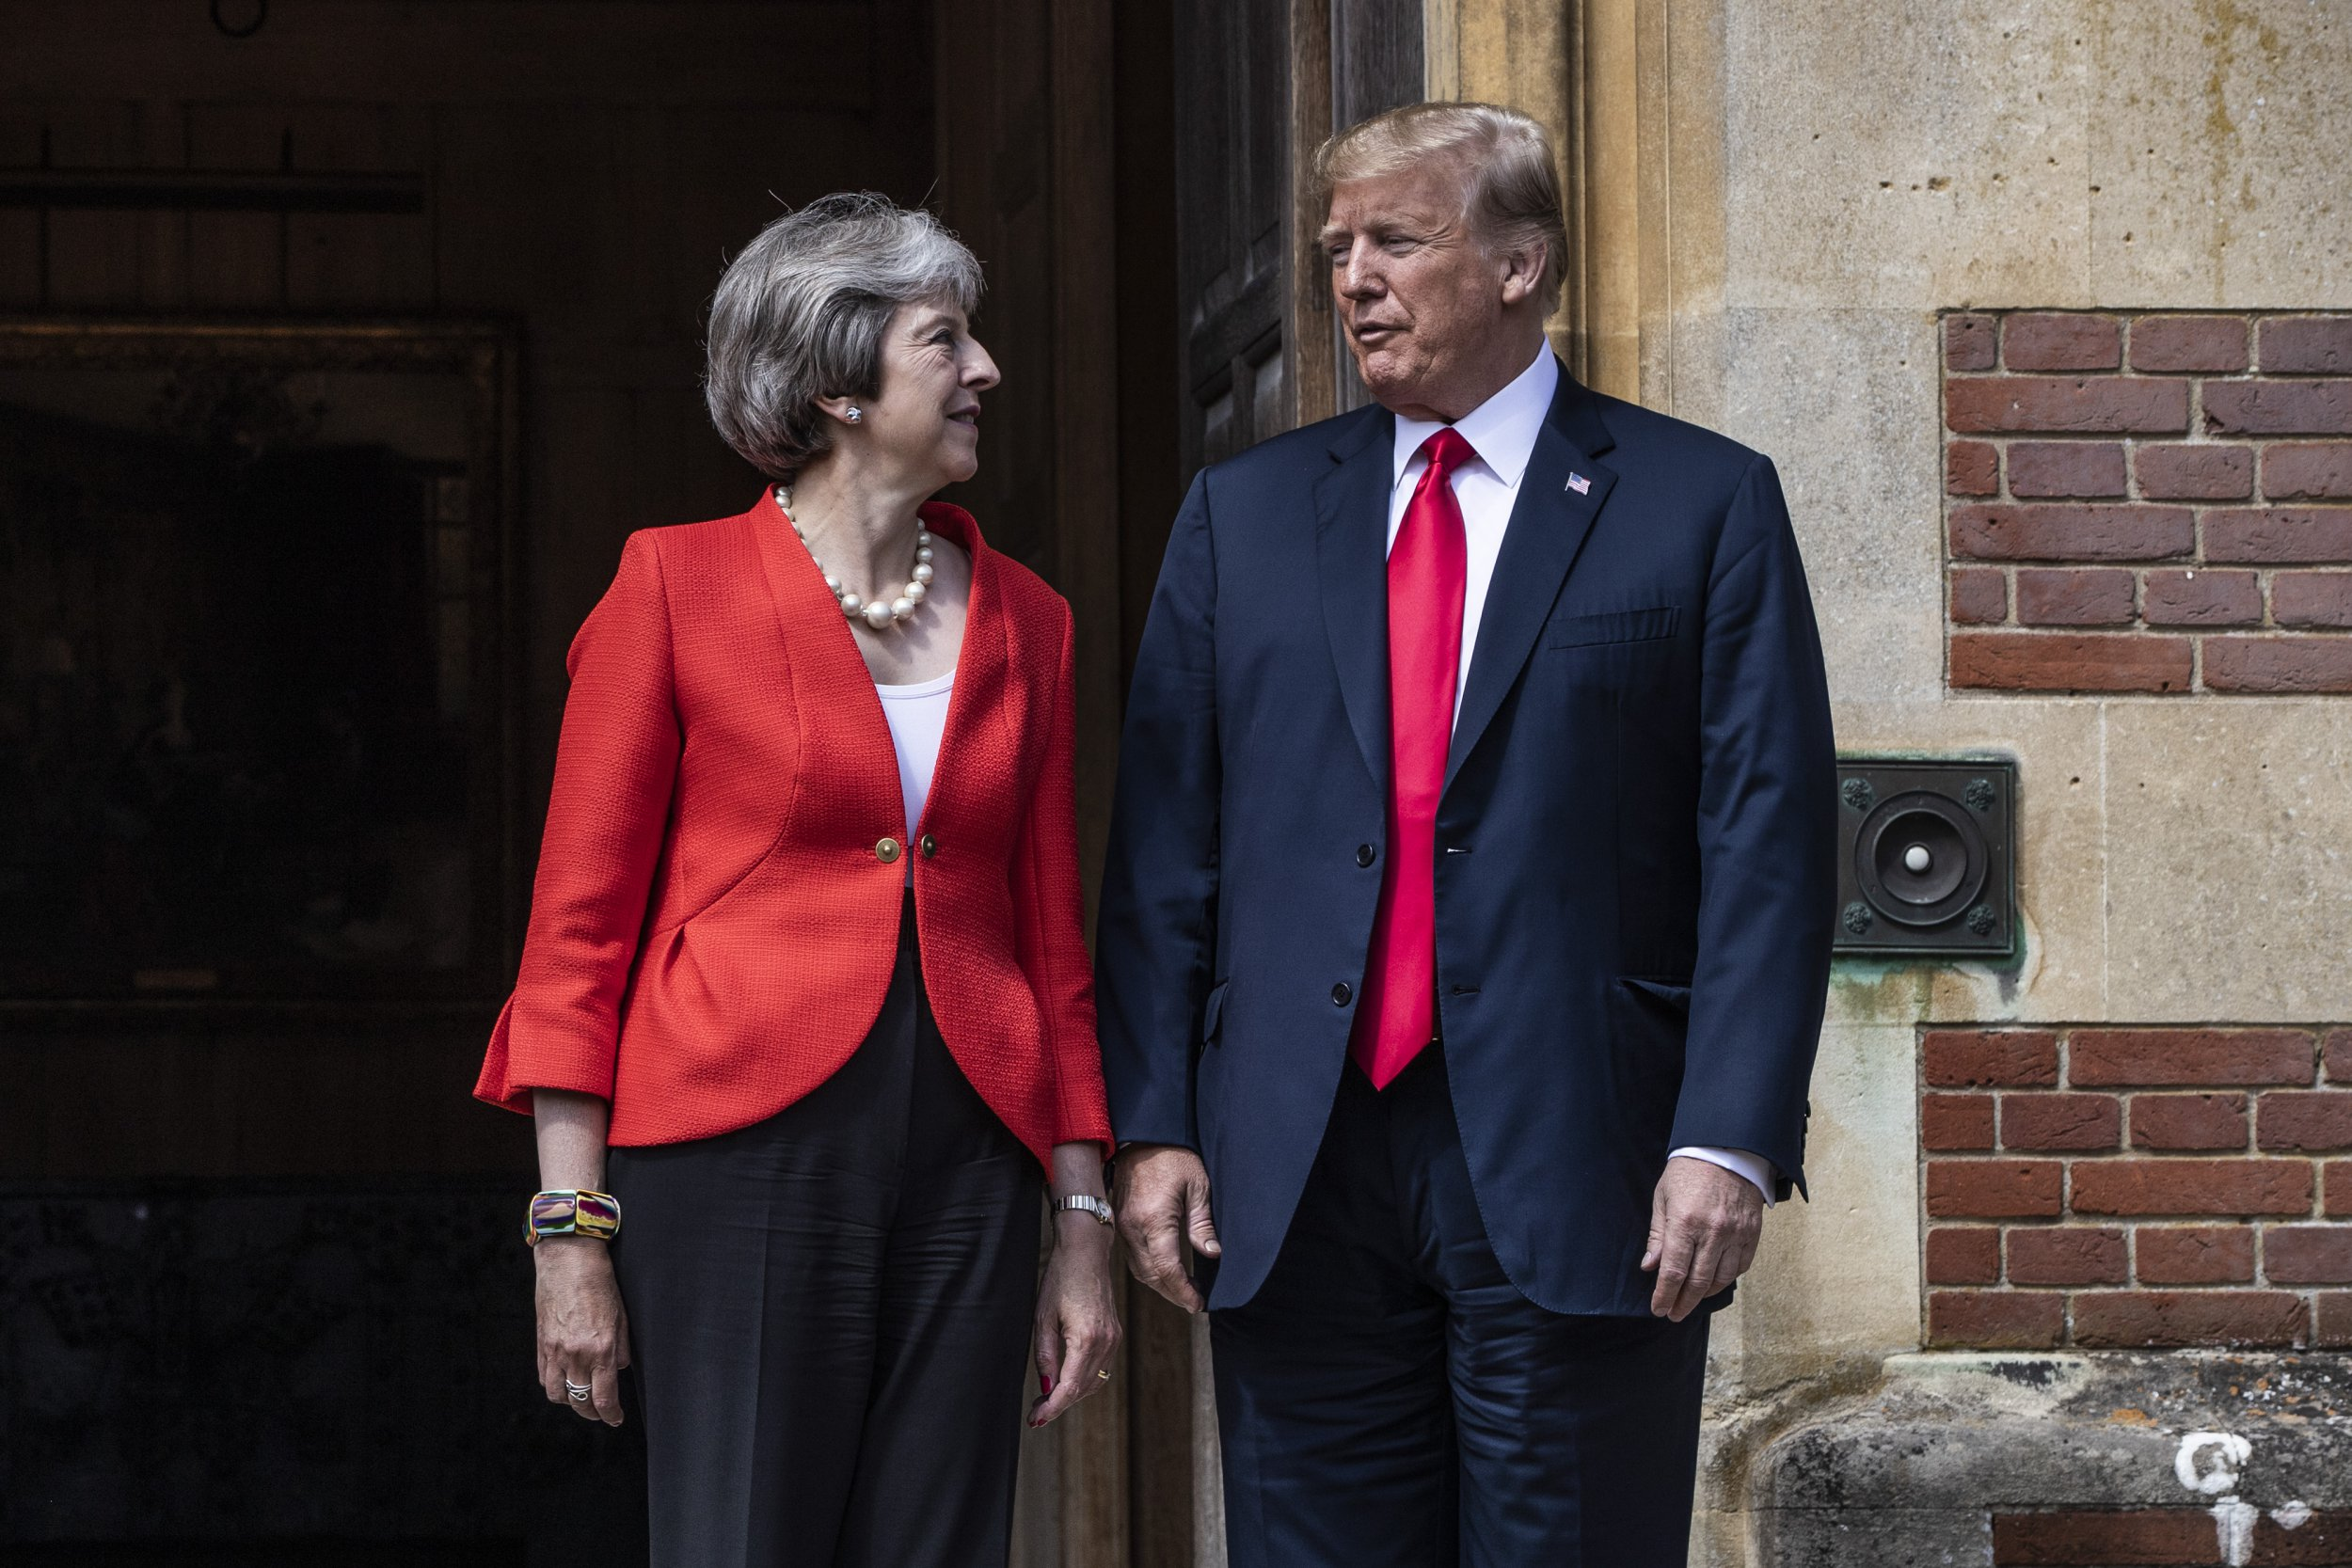 AYLESBURY, ENGLAND - JULY 13: British Prime Minister Theresa May greets U.S. President Donald Trump at Chequers on July 13, 2018 in Aylesbury, England. US President, Donald Trump, held bi-lateral talks with British Prime Minister, Theresa May at her grace-and-favour country residence, Chequers. Earlier British newspaper, The Sun, revealed criticisms of Theresa May and her Brexit policy made by President Trump in an exclusive interview. (Photo by Dan Kitwood/Getty Images)